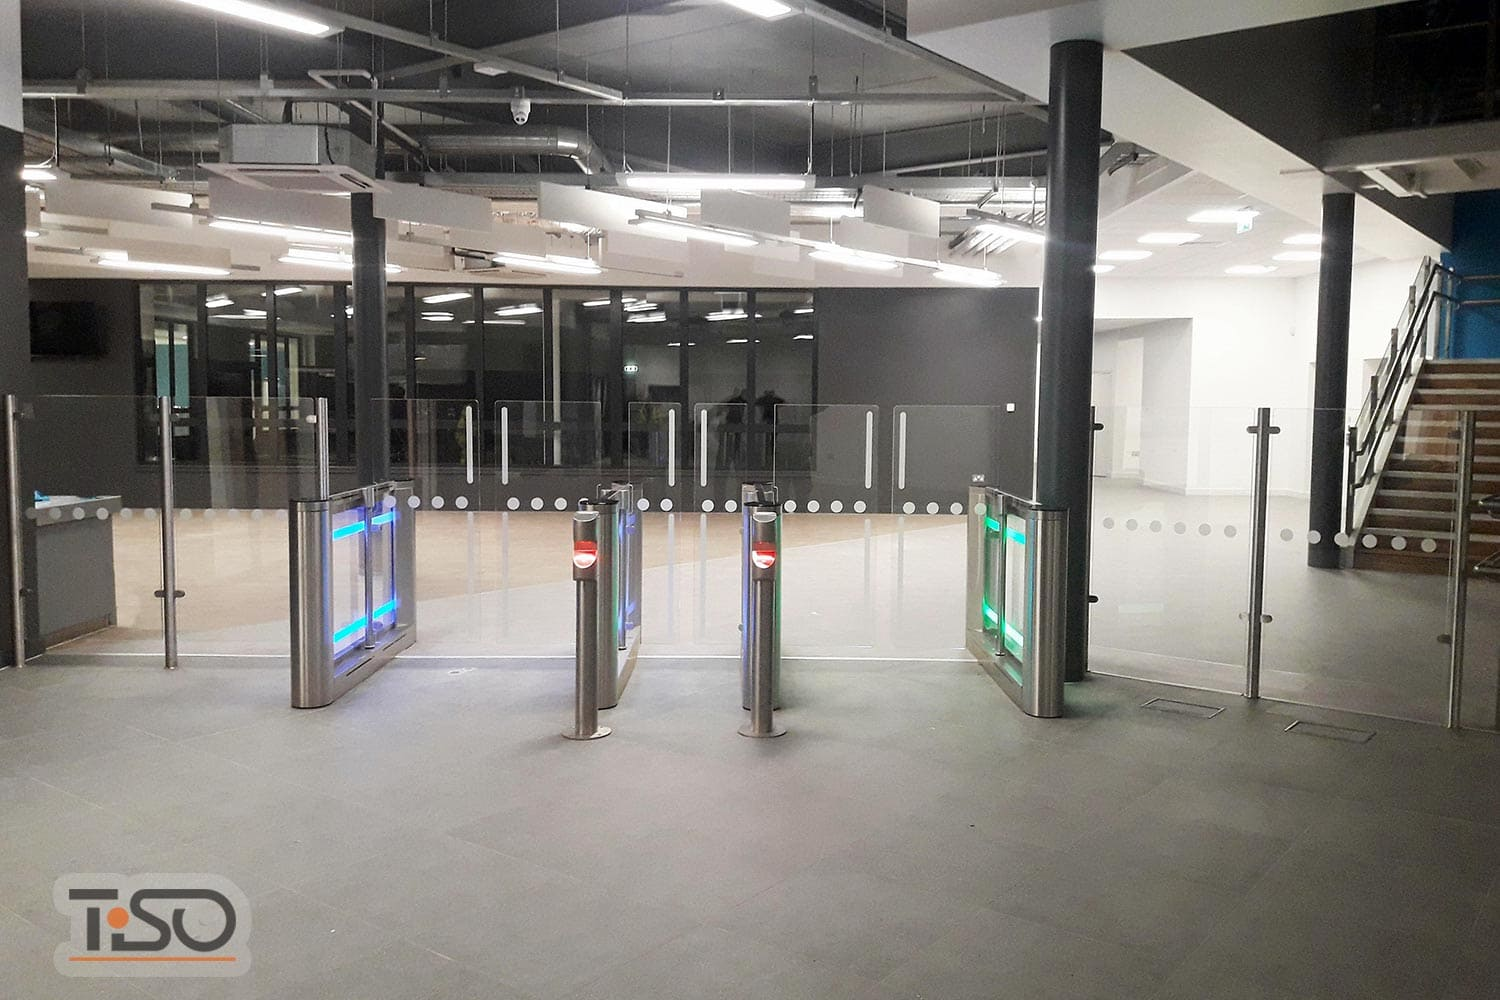 Sweeper-HG (customized width 1200 mm) and Glass enclosures, Andersonstown leisure centre, Belfast, Northern Ireland